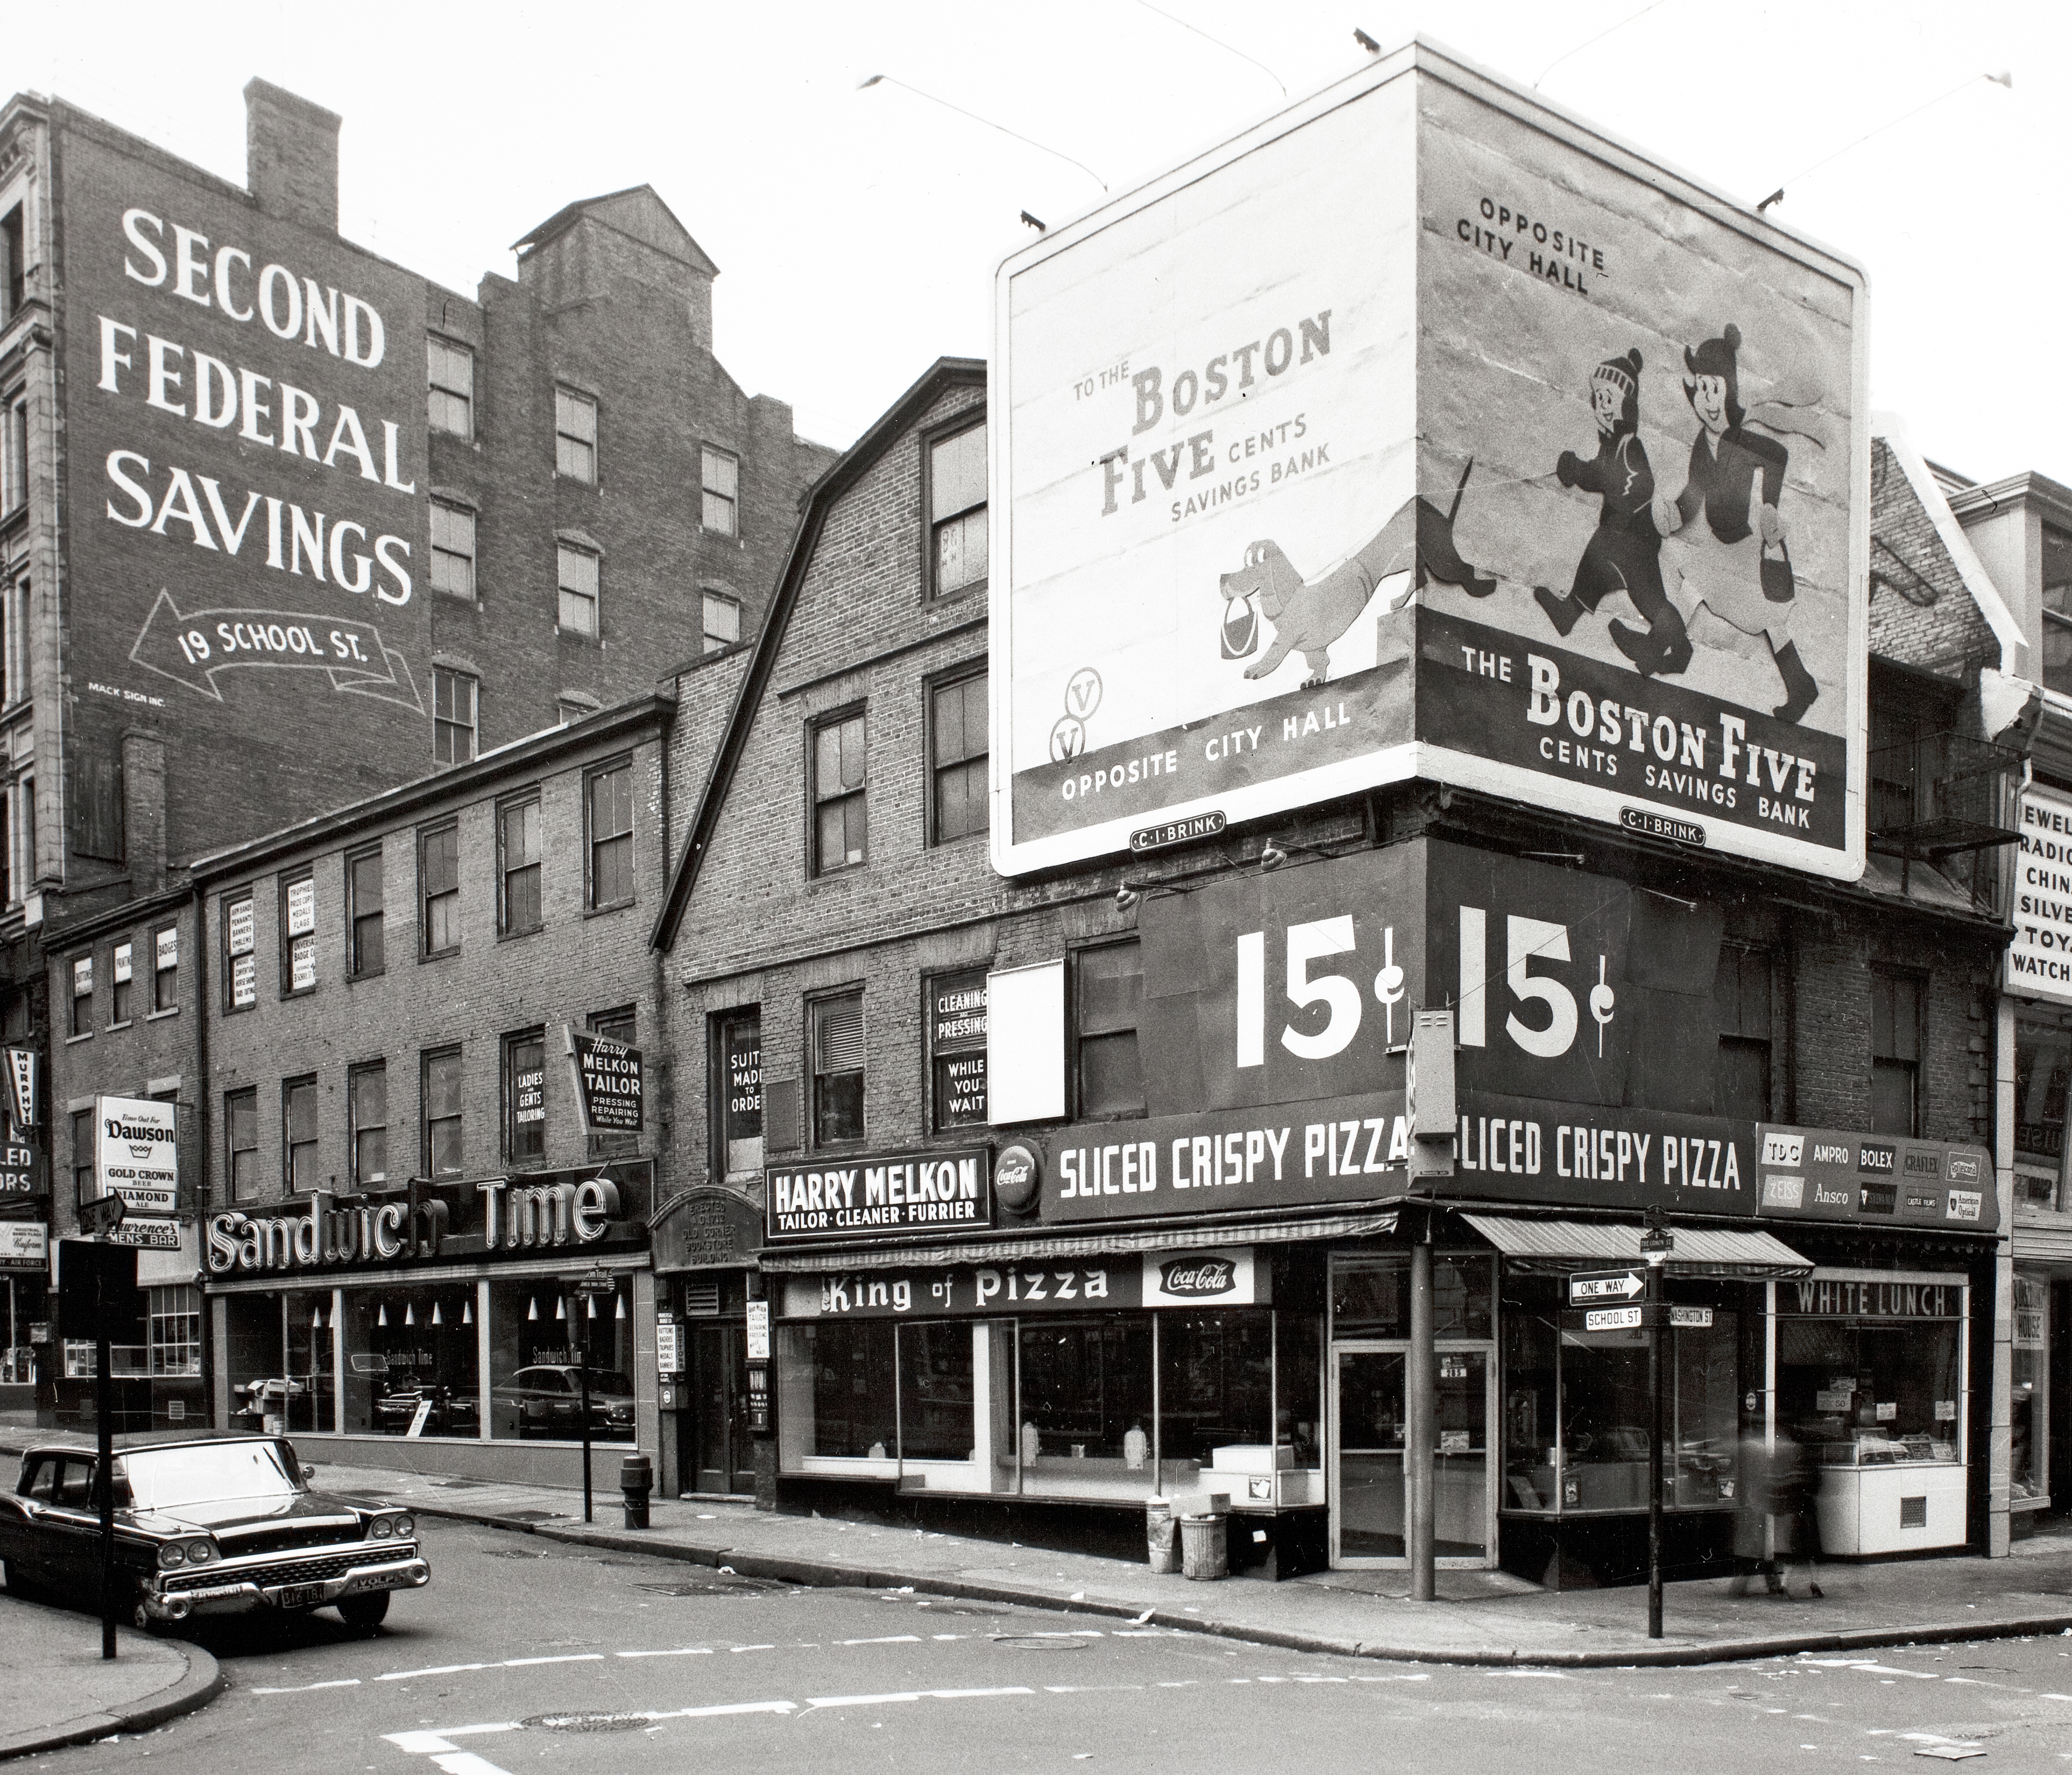 Five decades or so ago an unsightly billboard towered over one of Boston's oldest buildings, the Old Corner Bookstore.